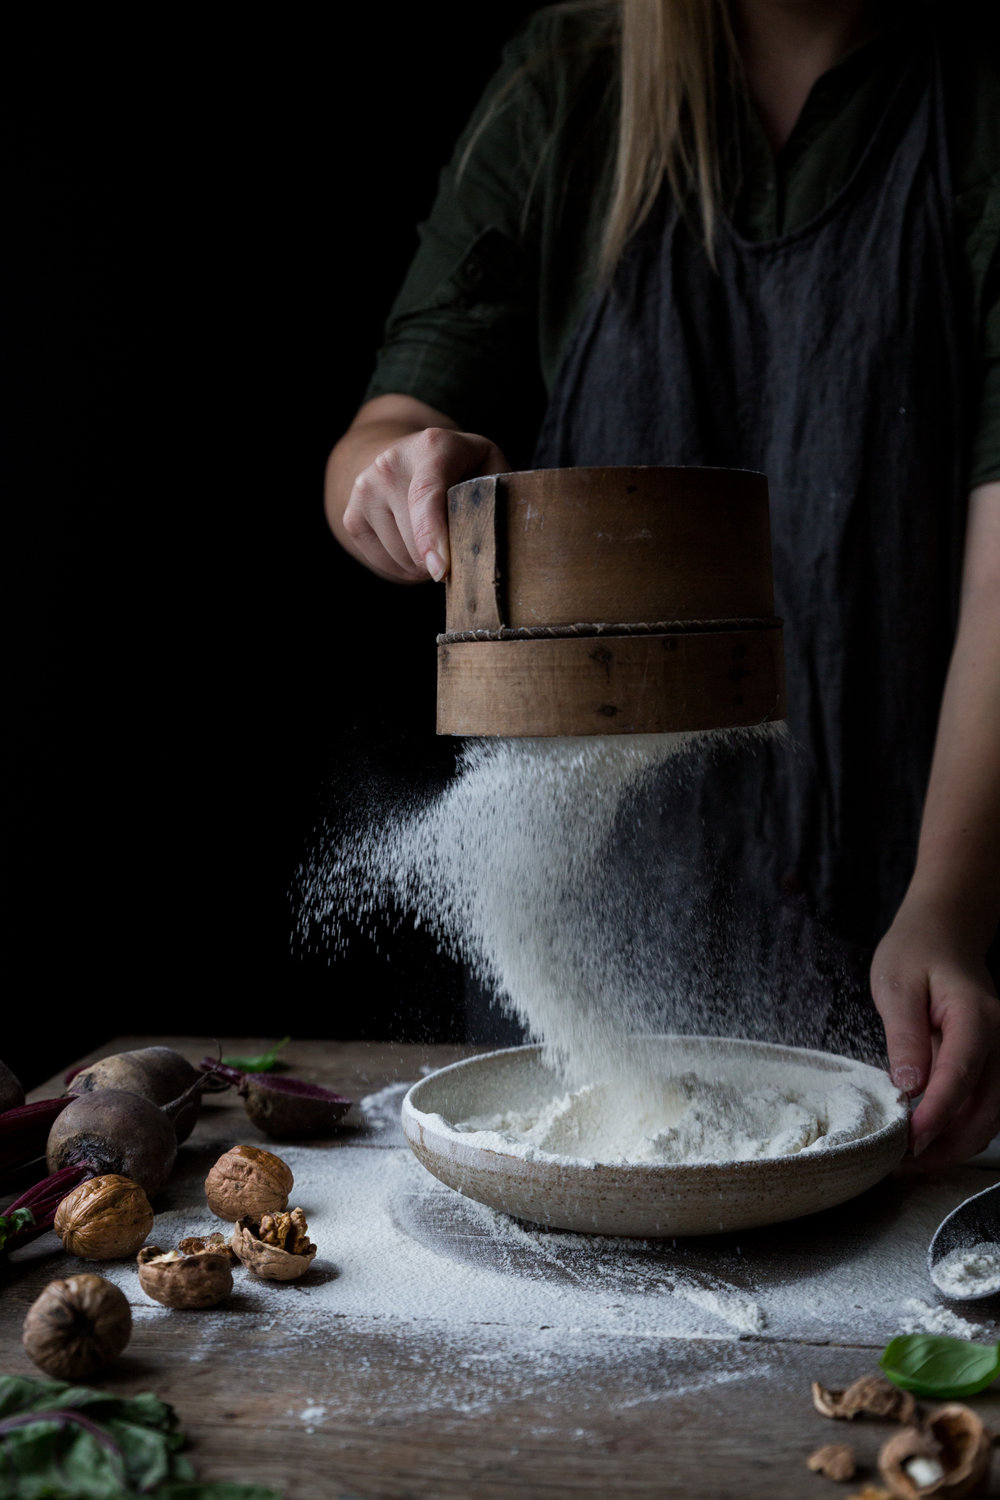 Online food photography and food styling course